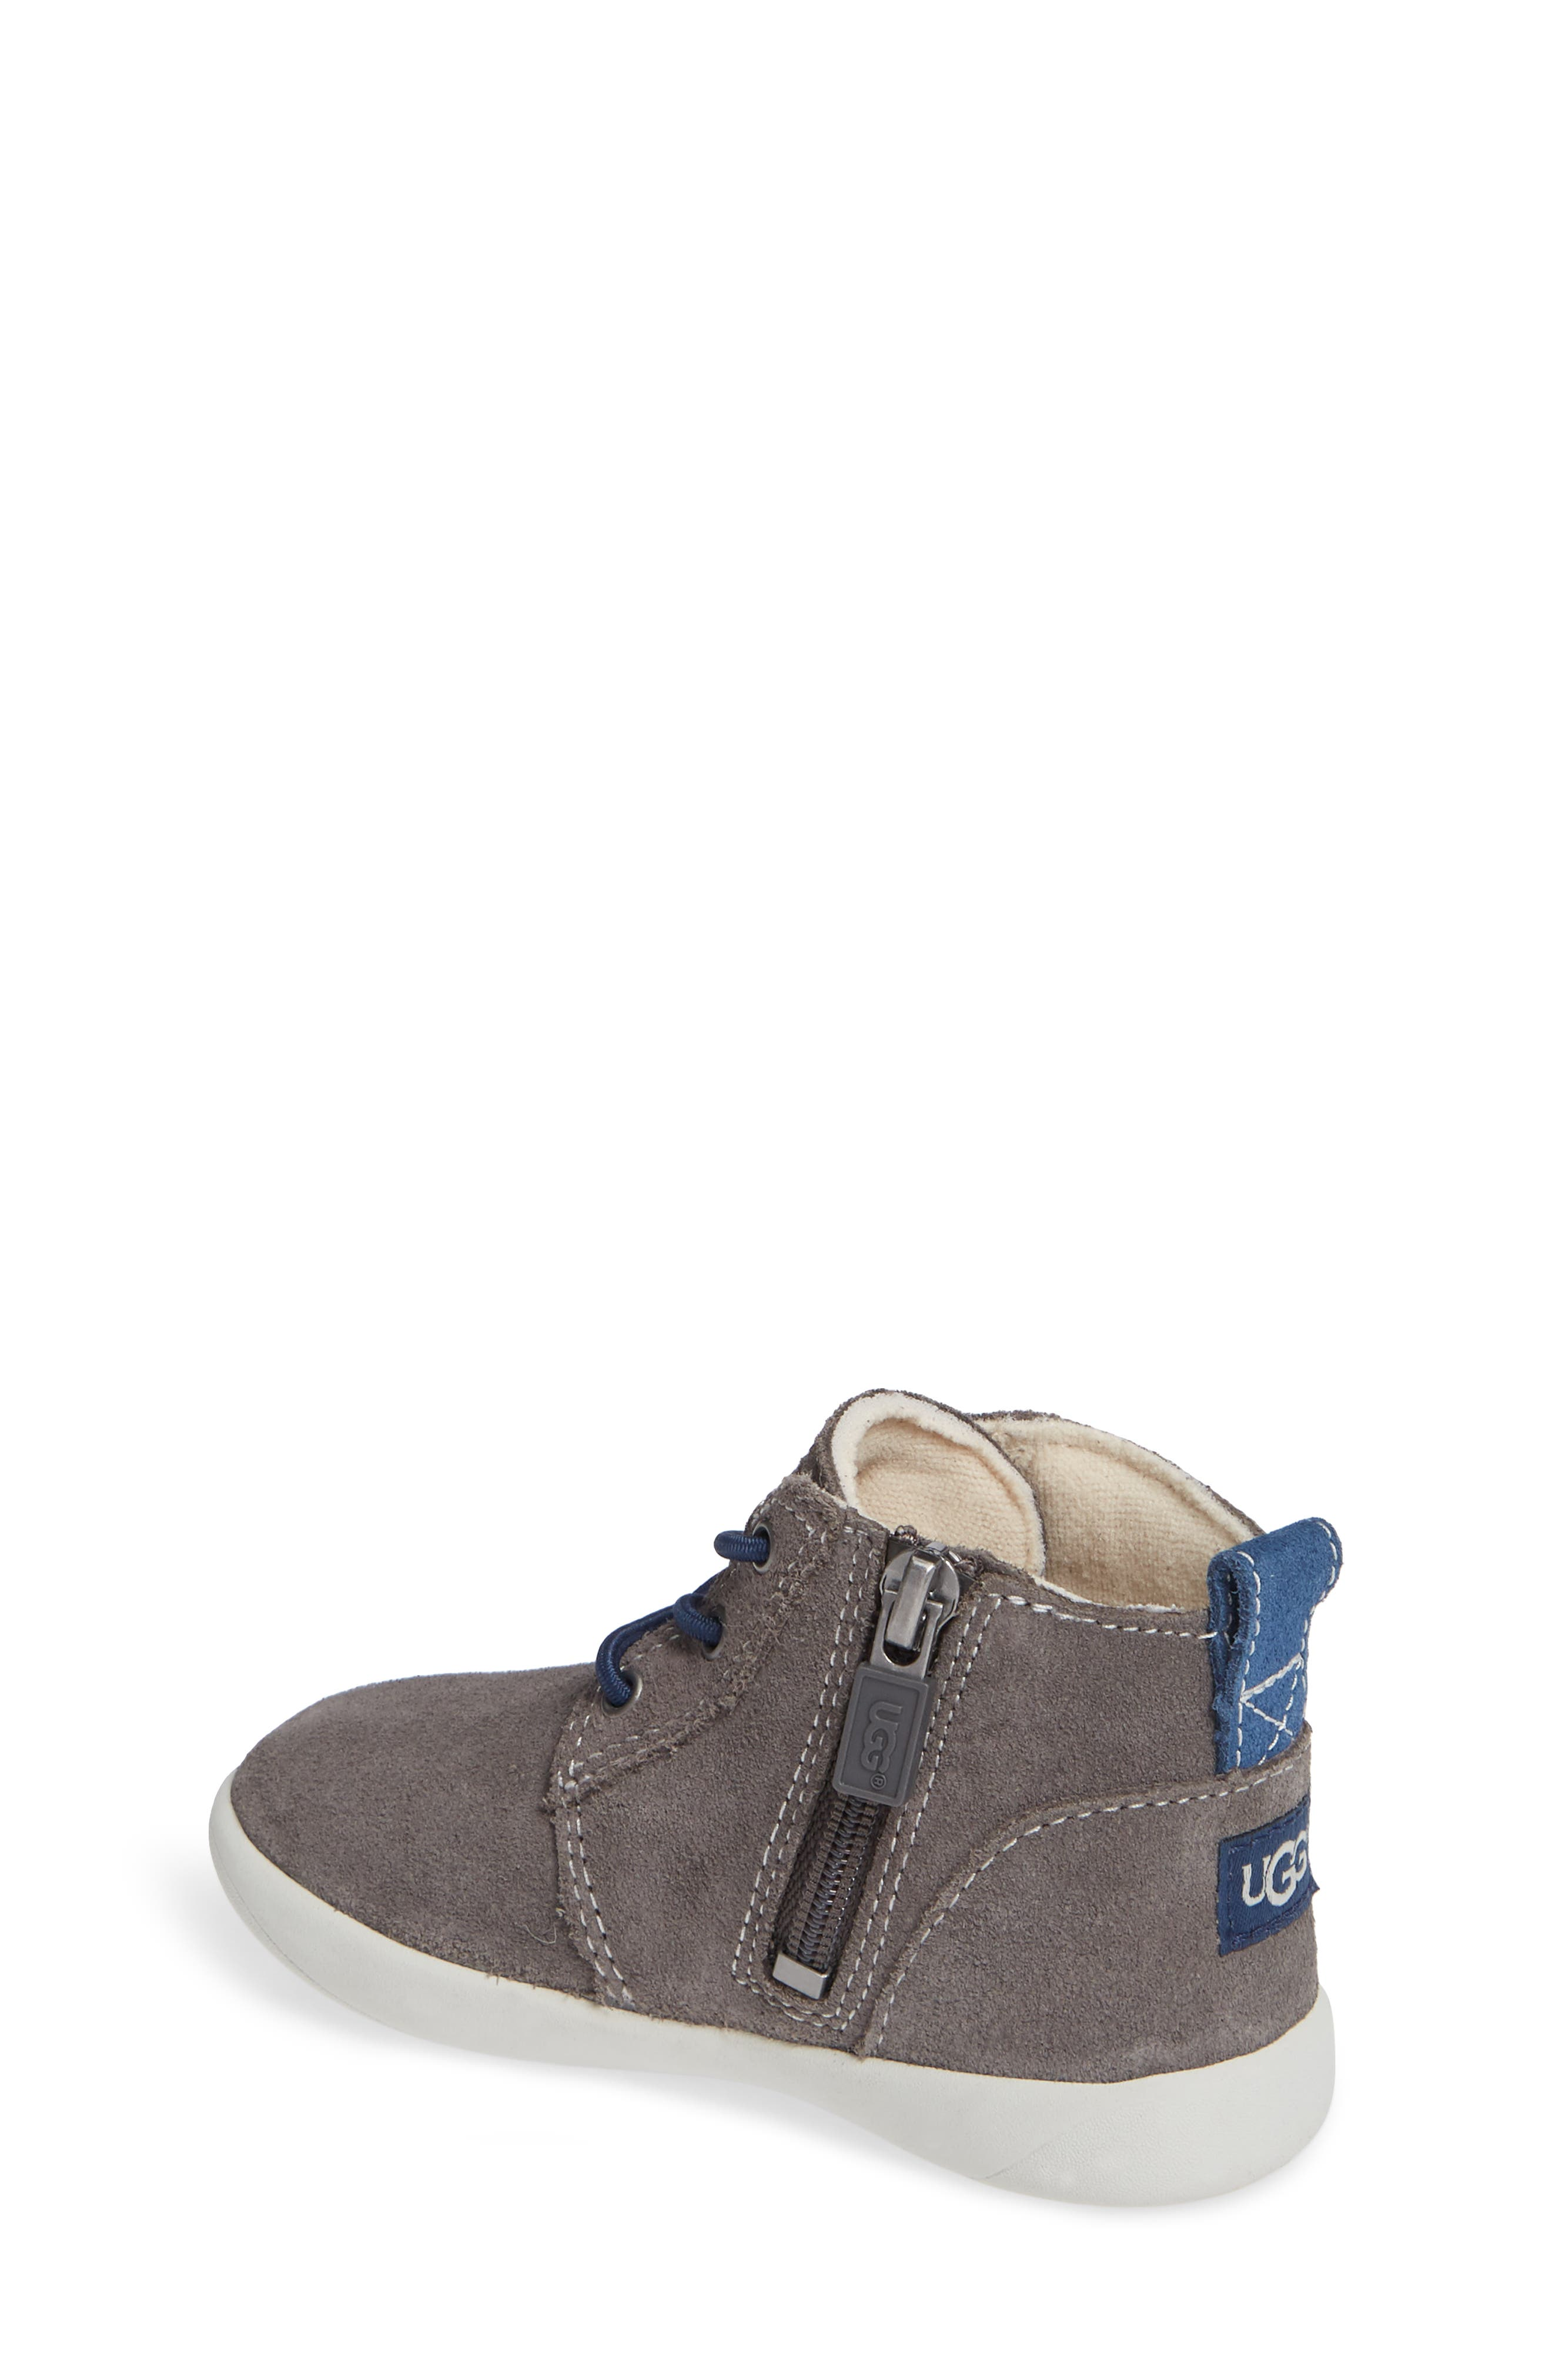 Kristjan Chukka Bootie Sneaker,                             Alternate thumbnail 2, color,                             Charcoal Grey